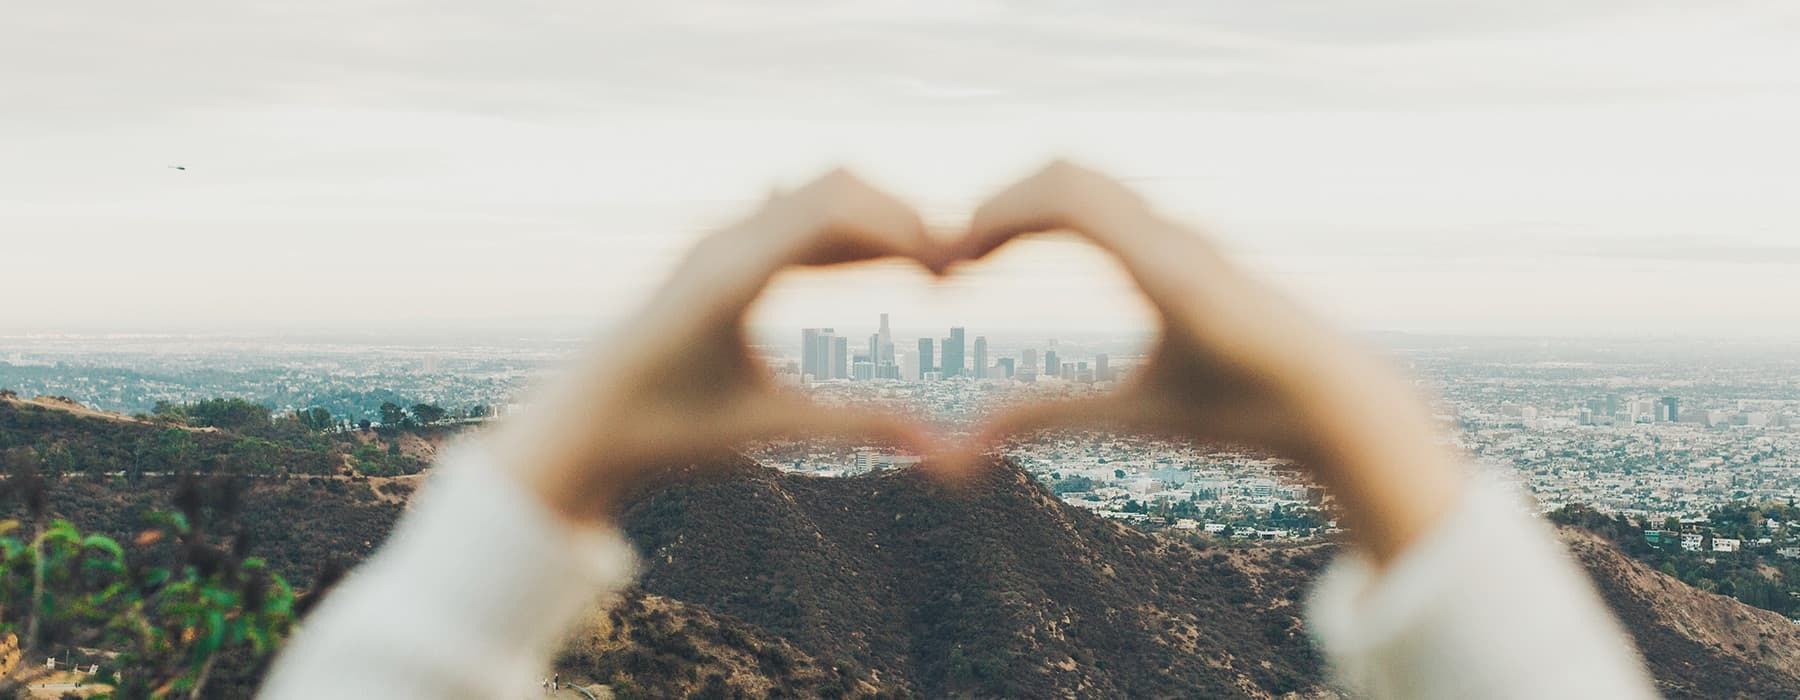 lifestyle image of hands making a heart shape with the distant city in the background